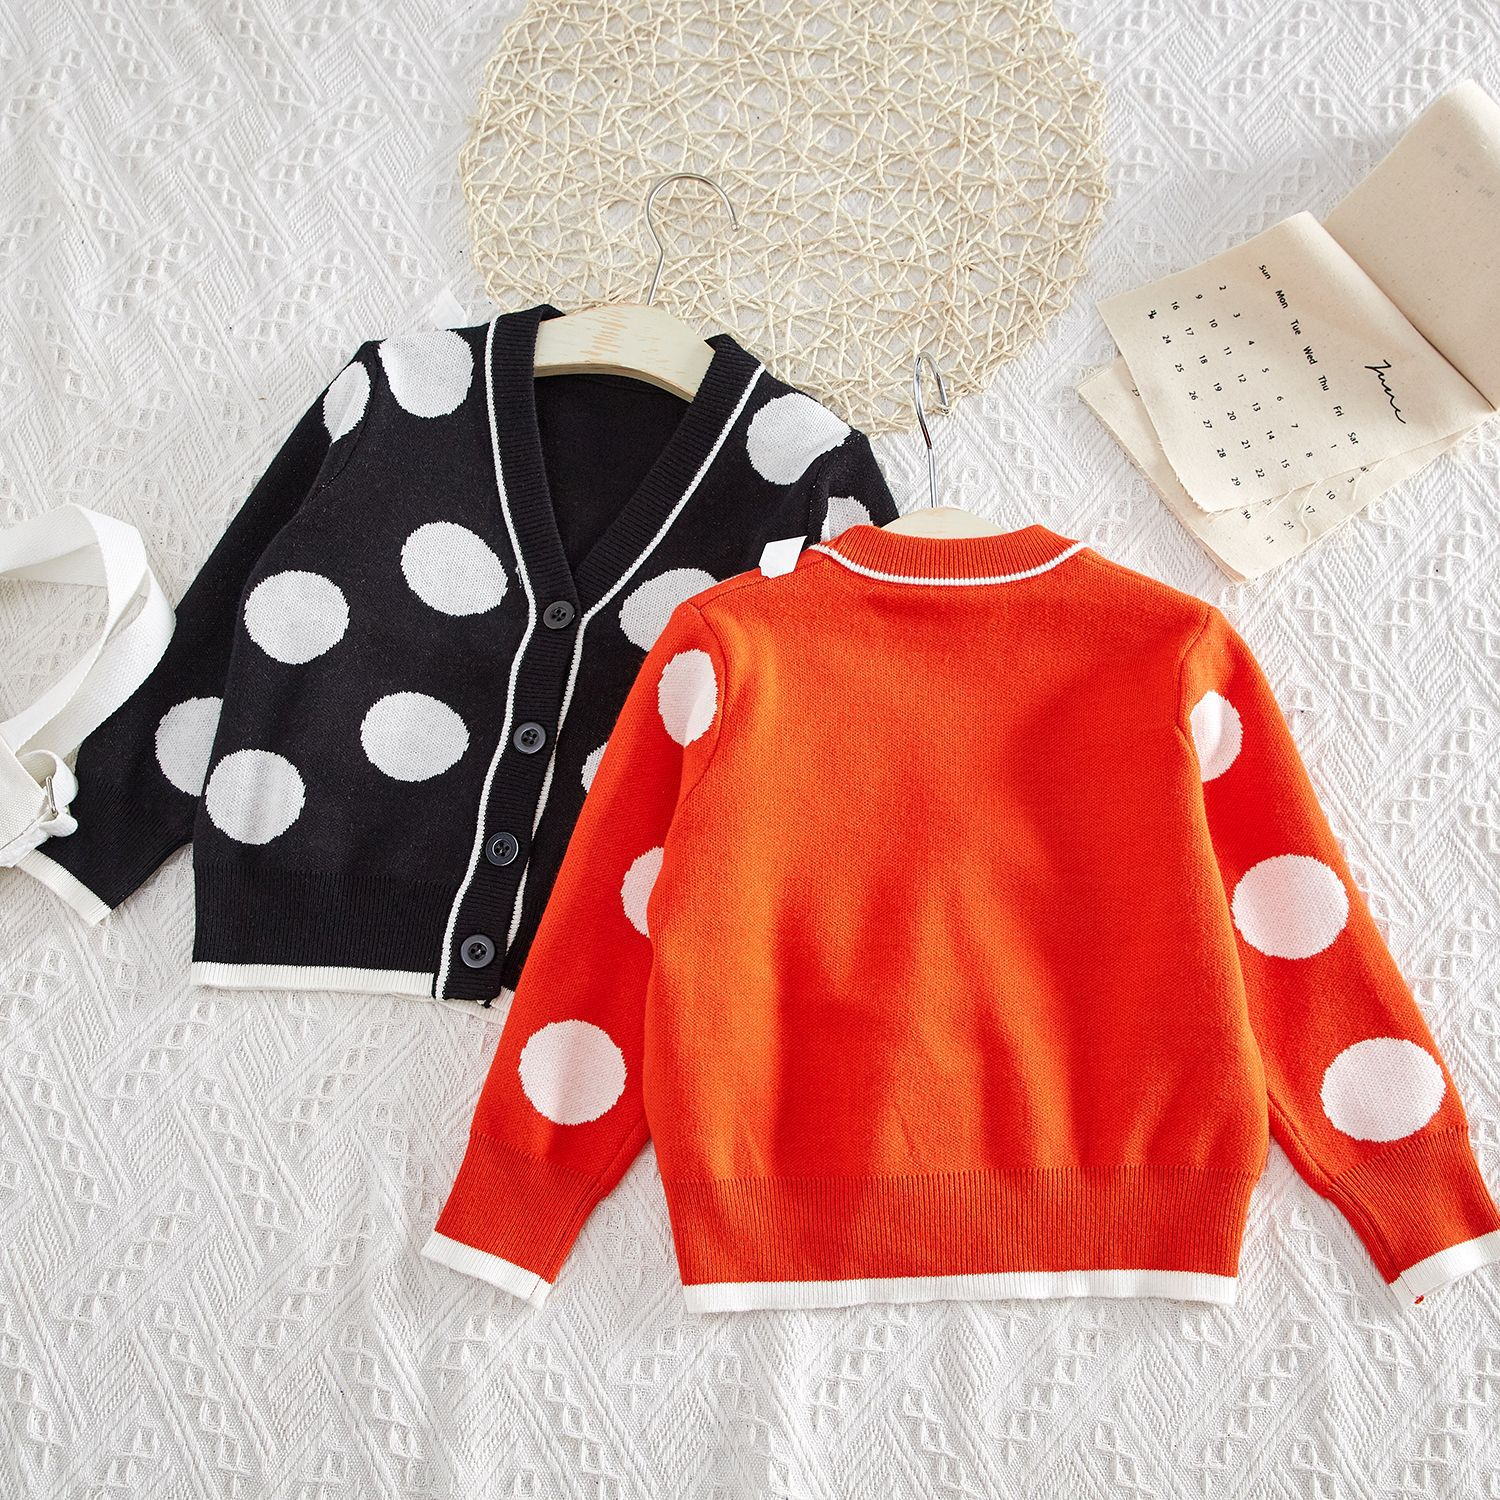 South Korea Childrenswear Parent-child Matching Outfit Mother-daughter Matching Outfit Polka Dot Cardigan V-neck Knit Western St